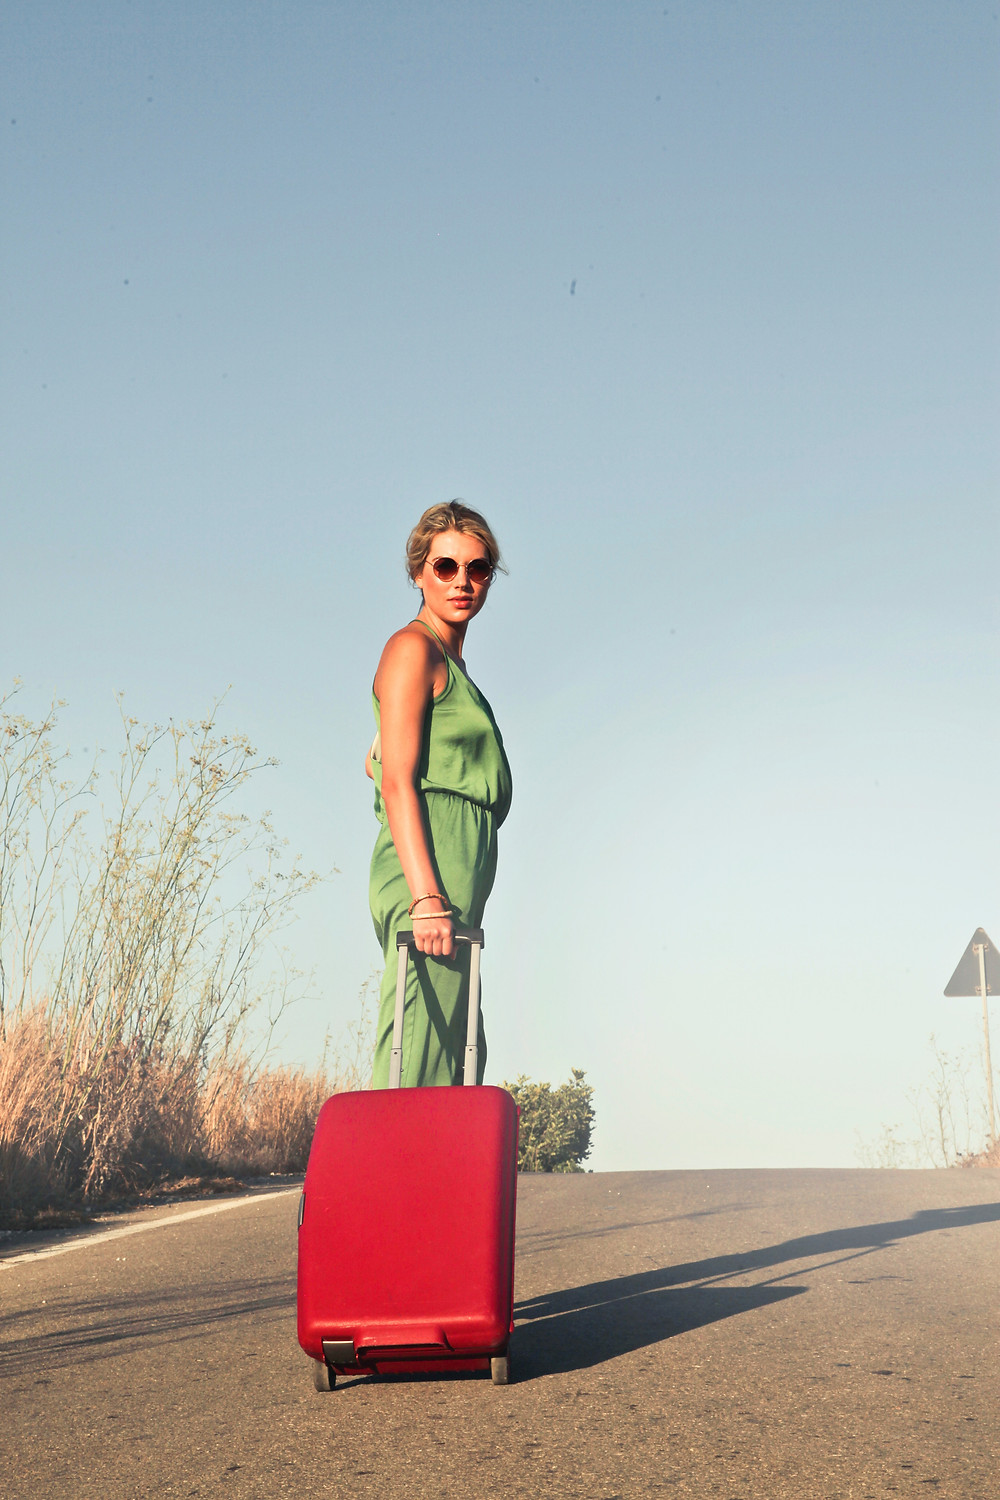 Woman in the middle of the road with a suitcase